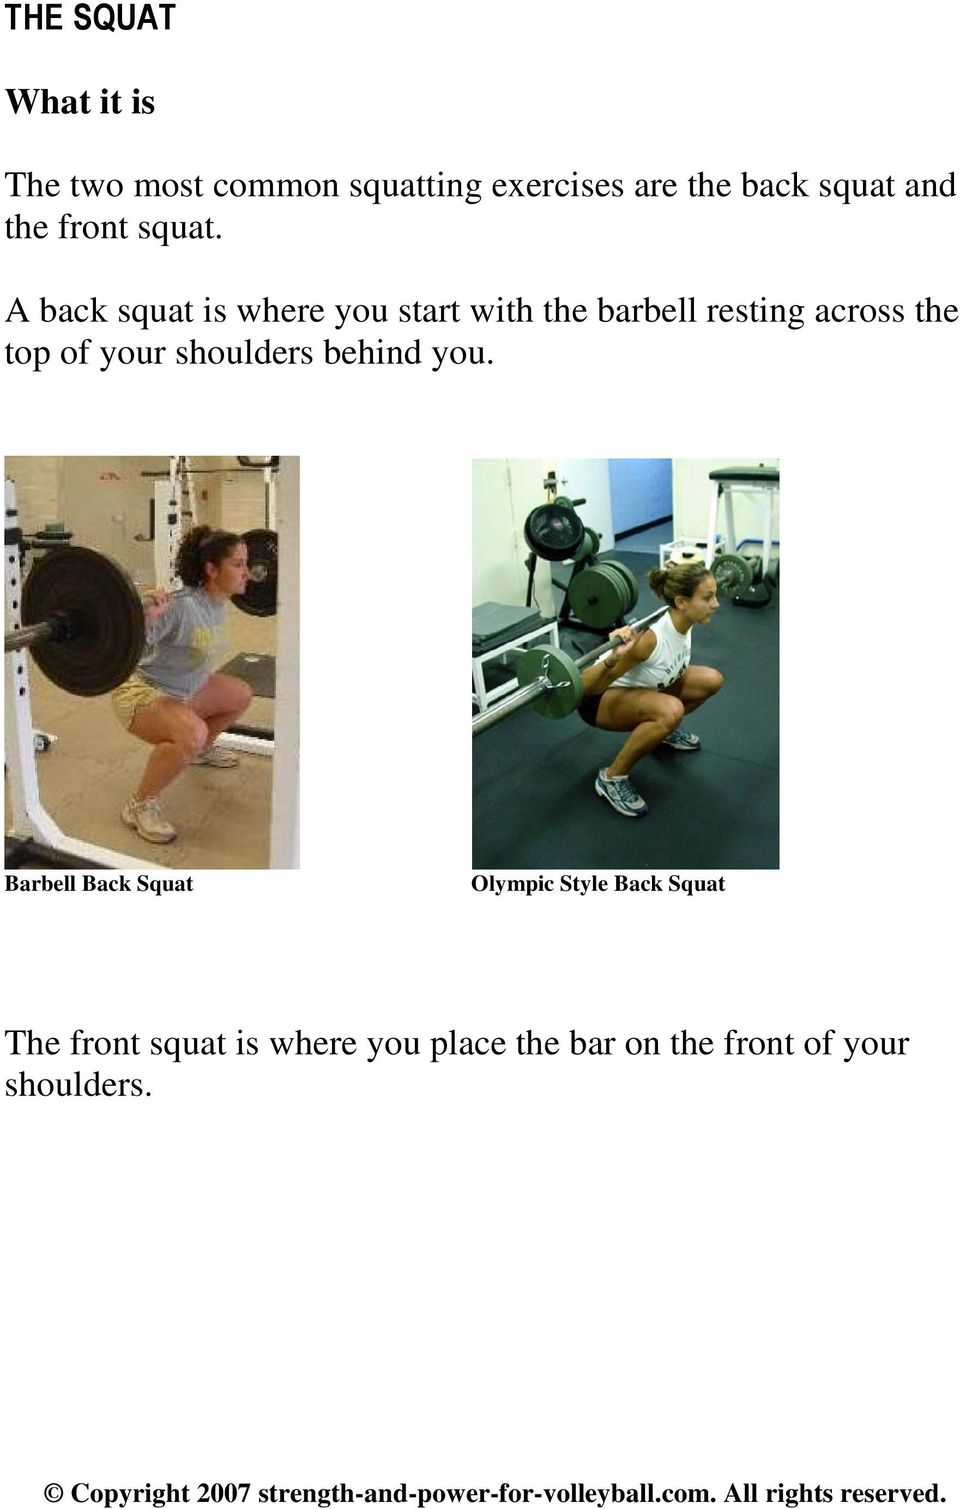 A back squat is where you start with the barbell resting across the top of your